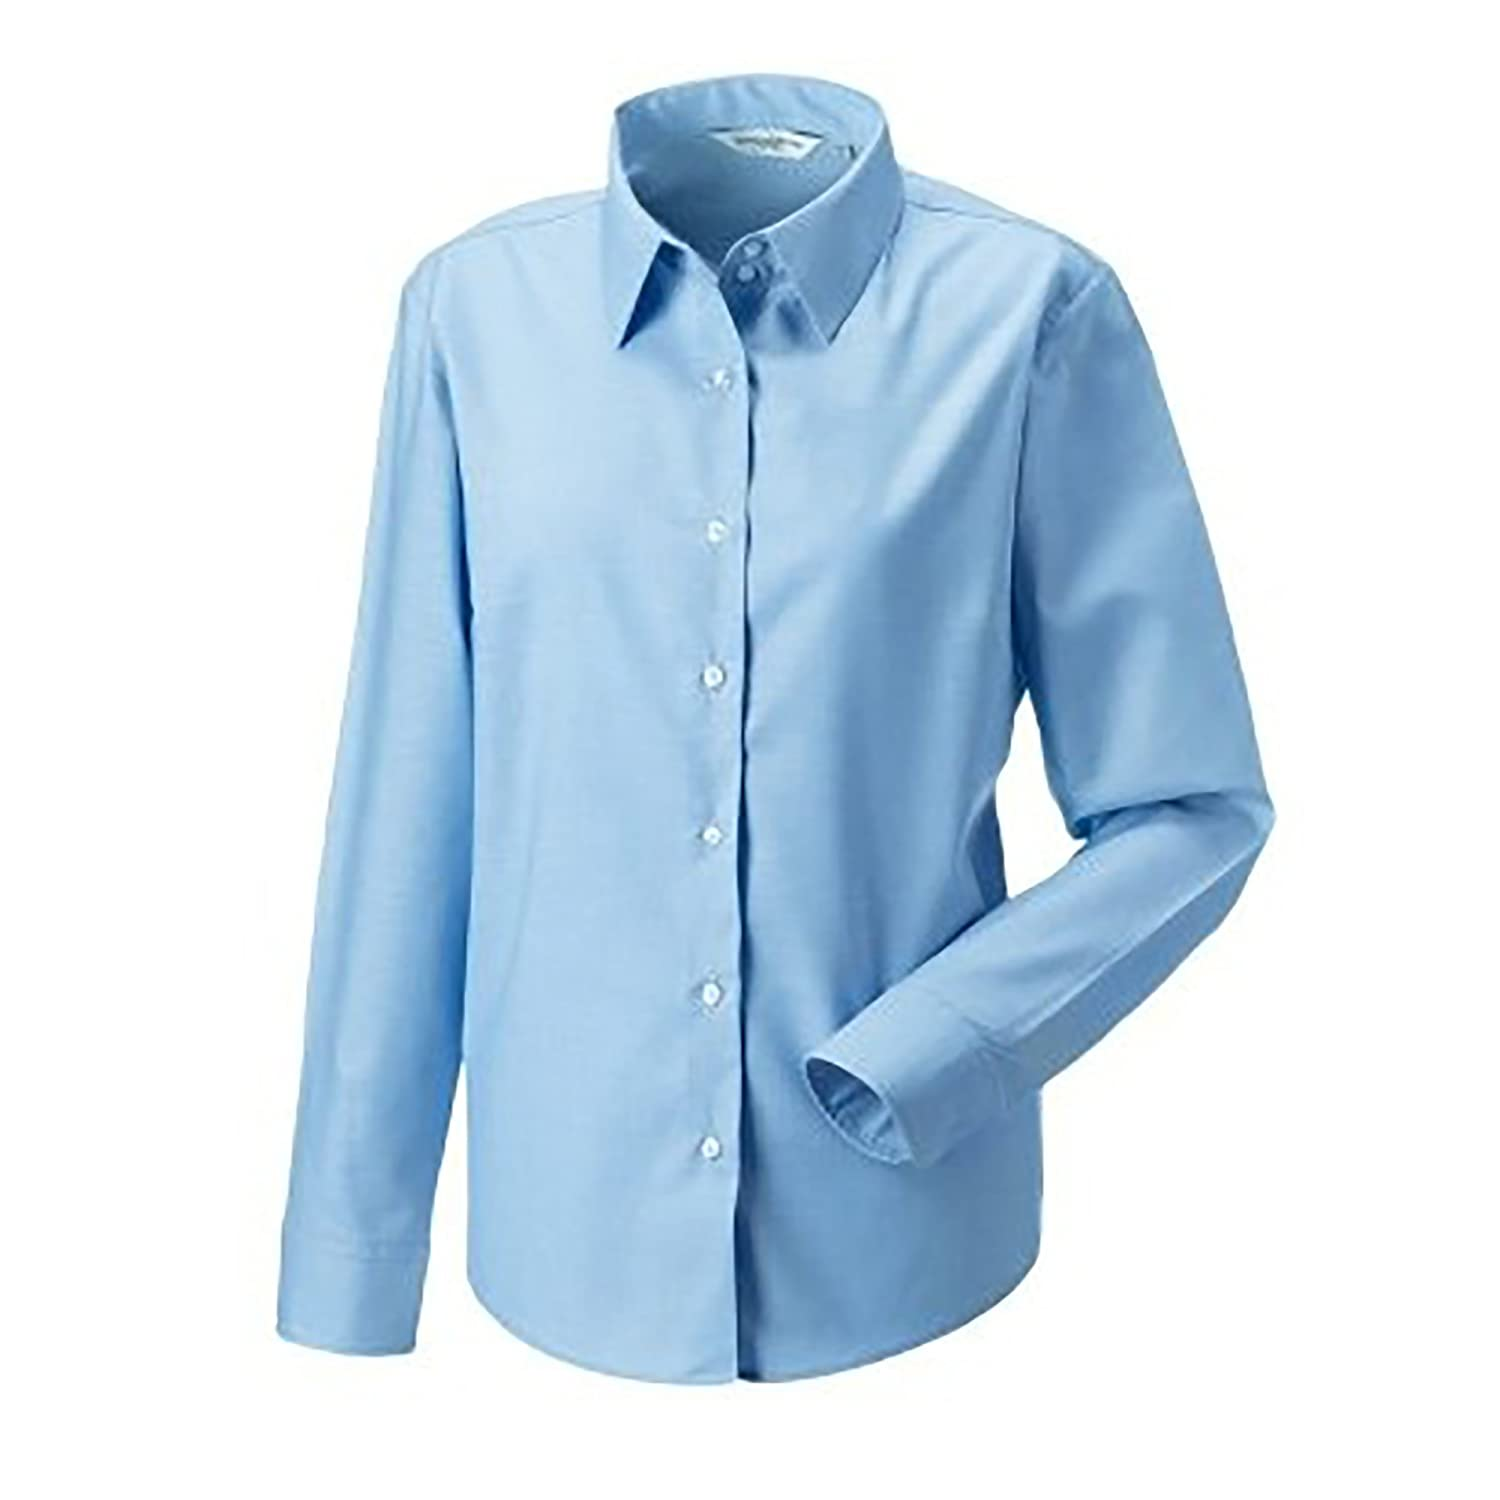 Russell Collection Ladies/Womens Long Sleeve Easy Care Oxford Shirt:  Amazon.co.uk: Clothing